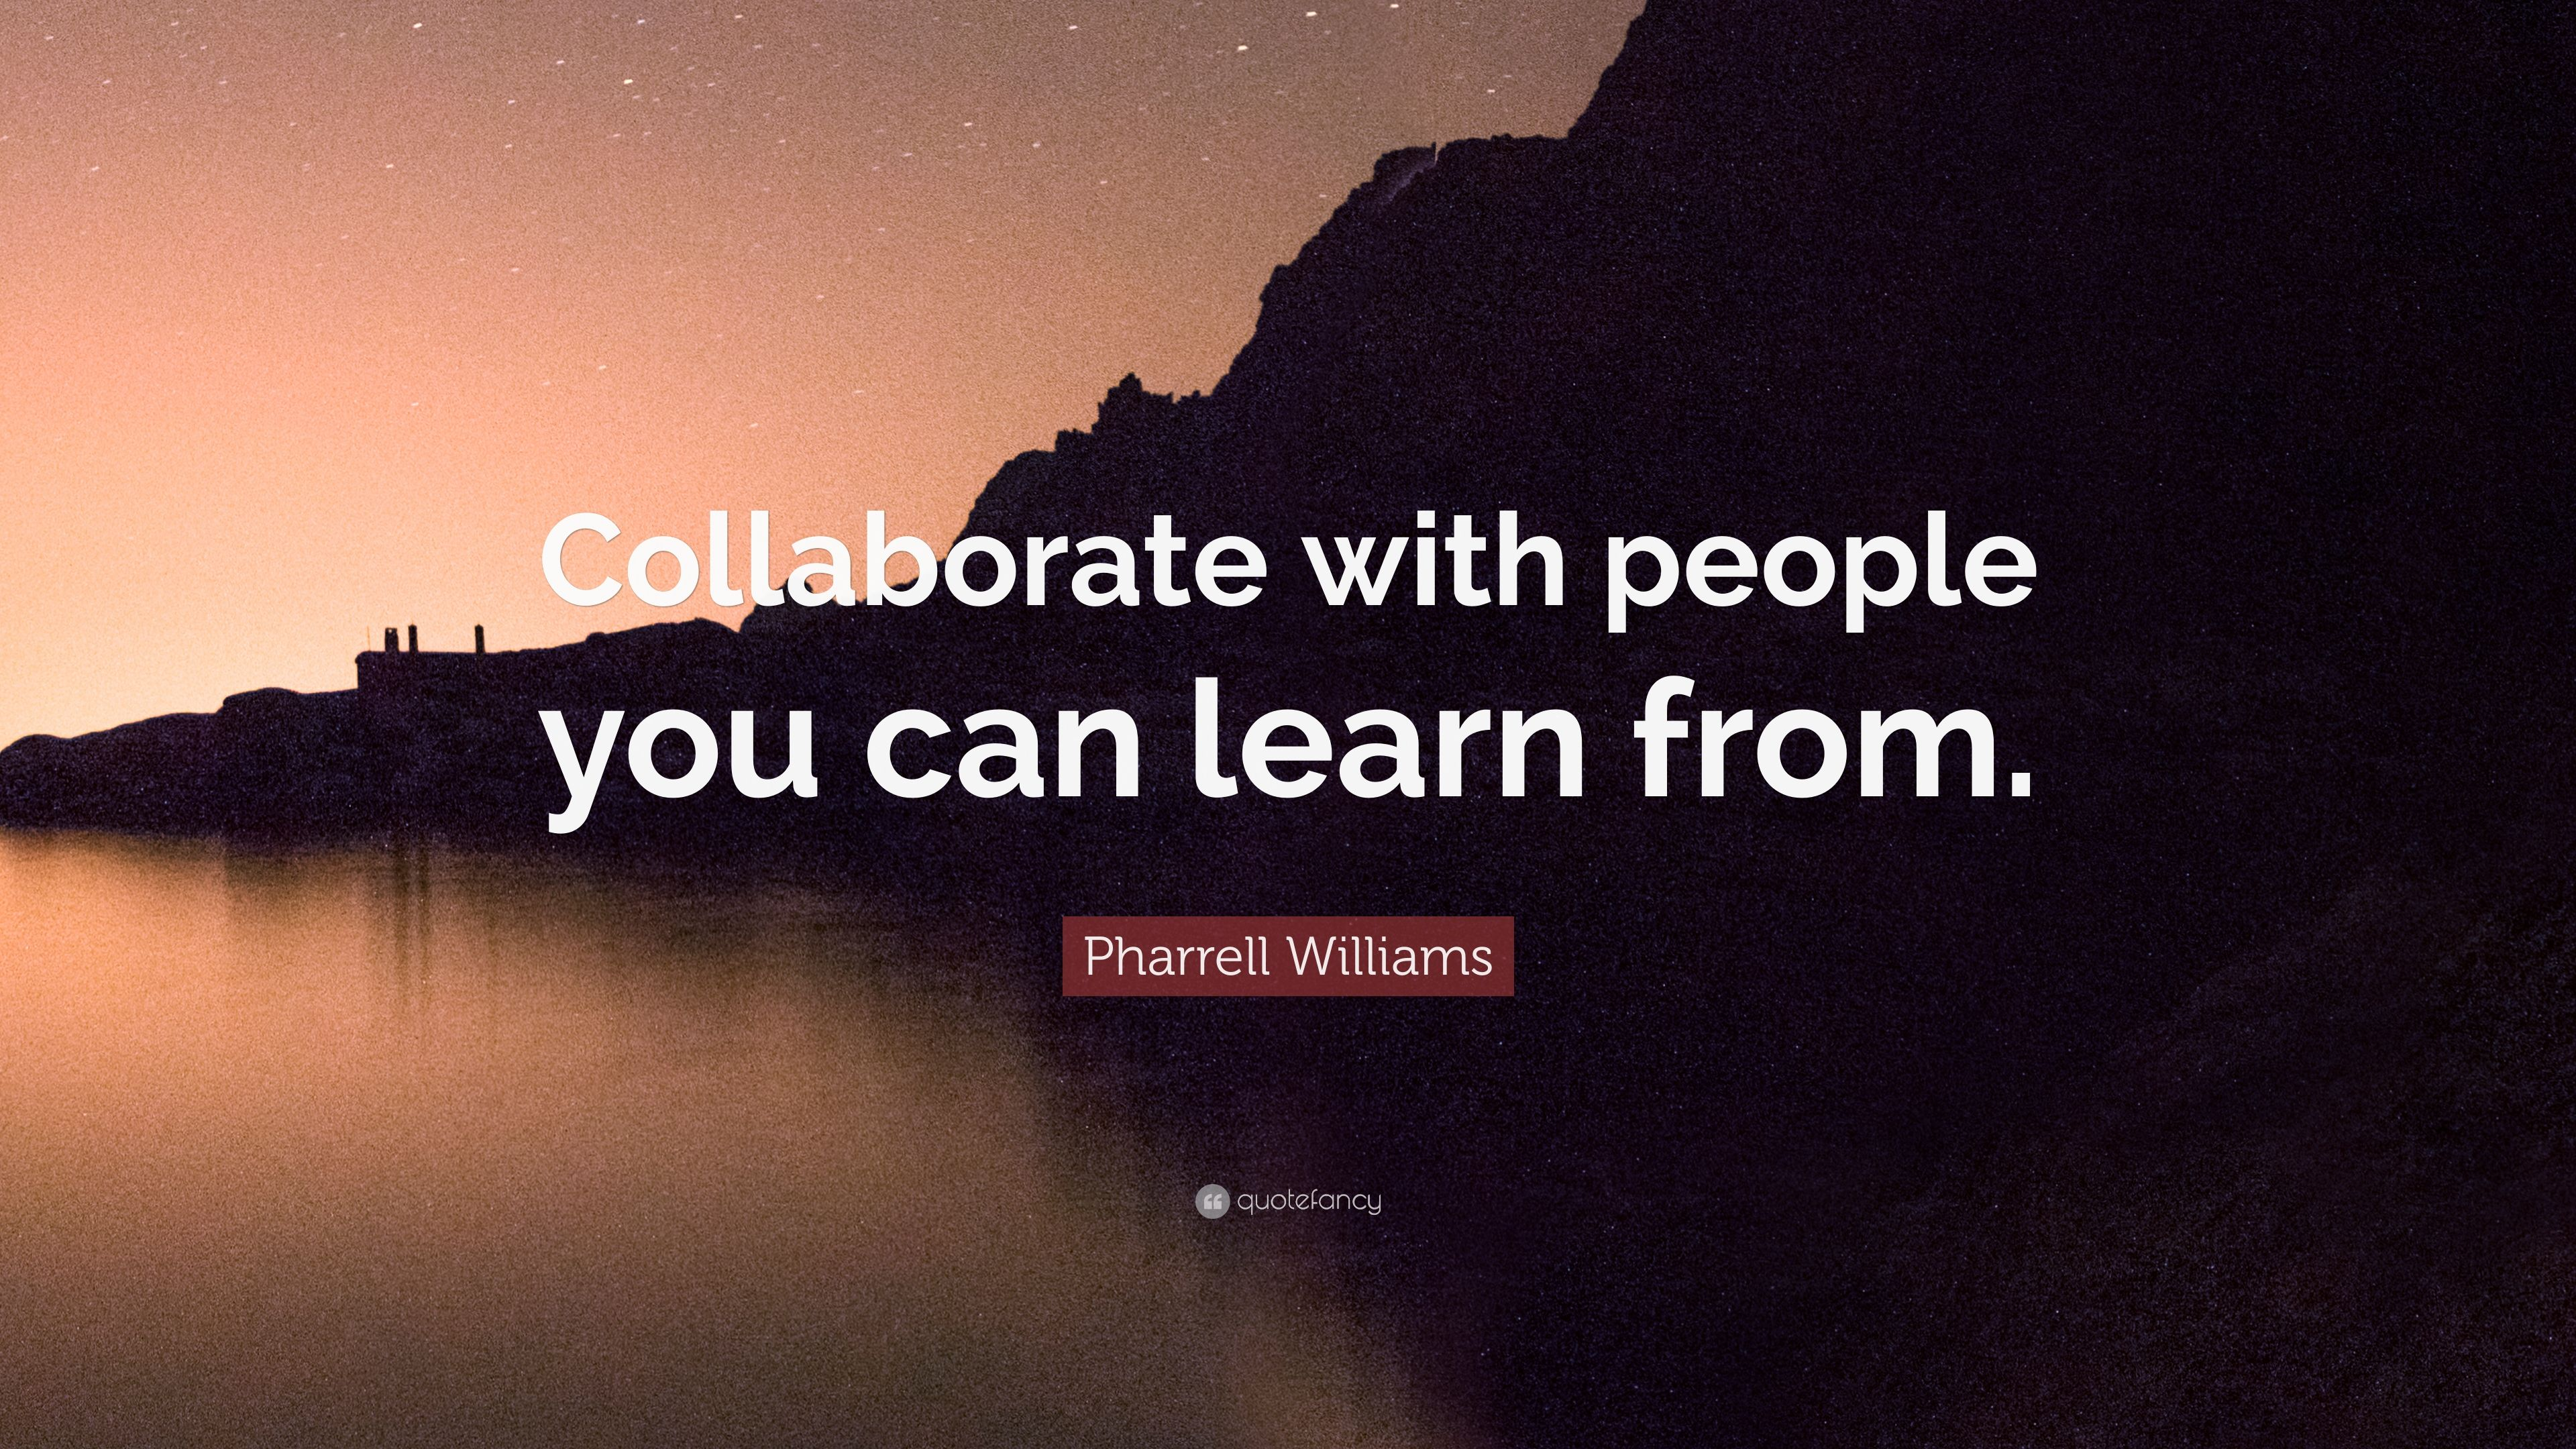 3 Ways to Collaborate - wikiHow